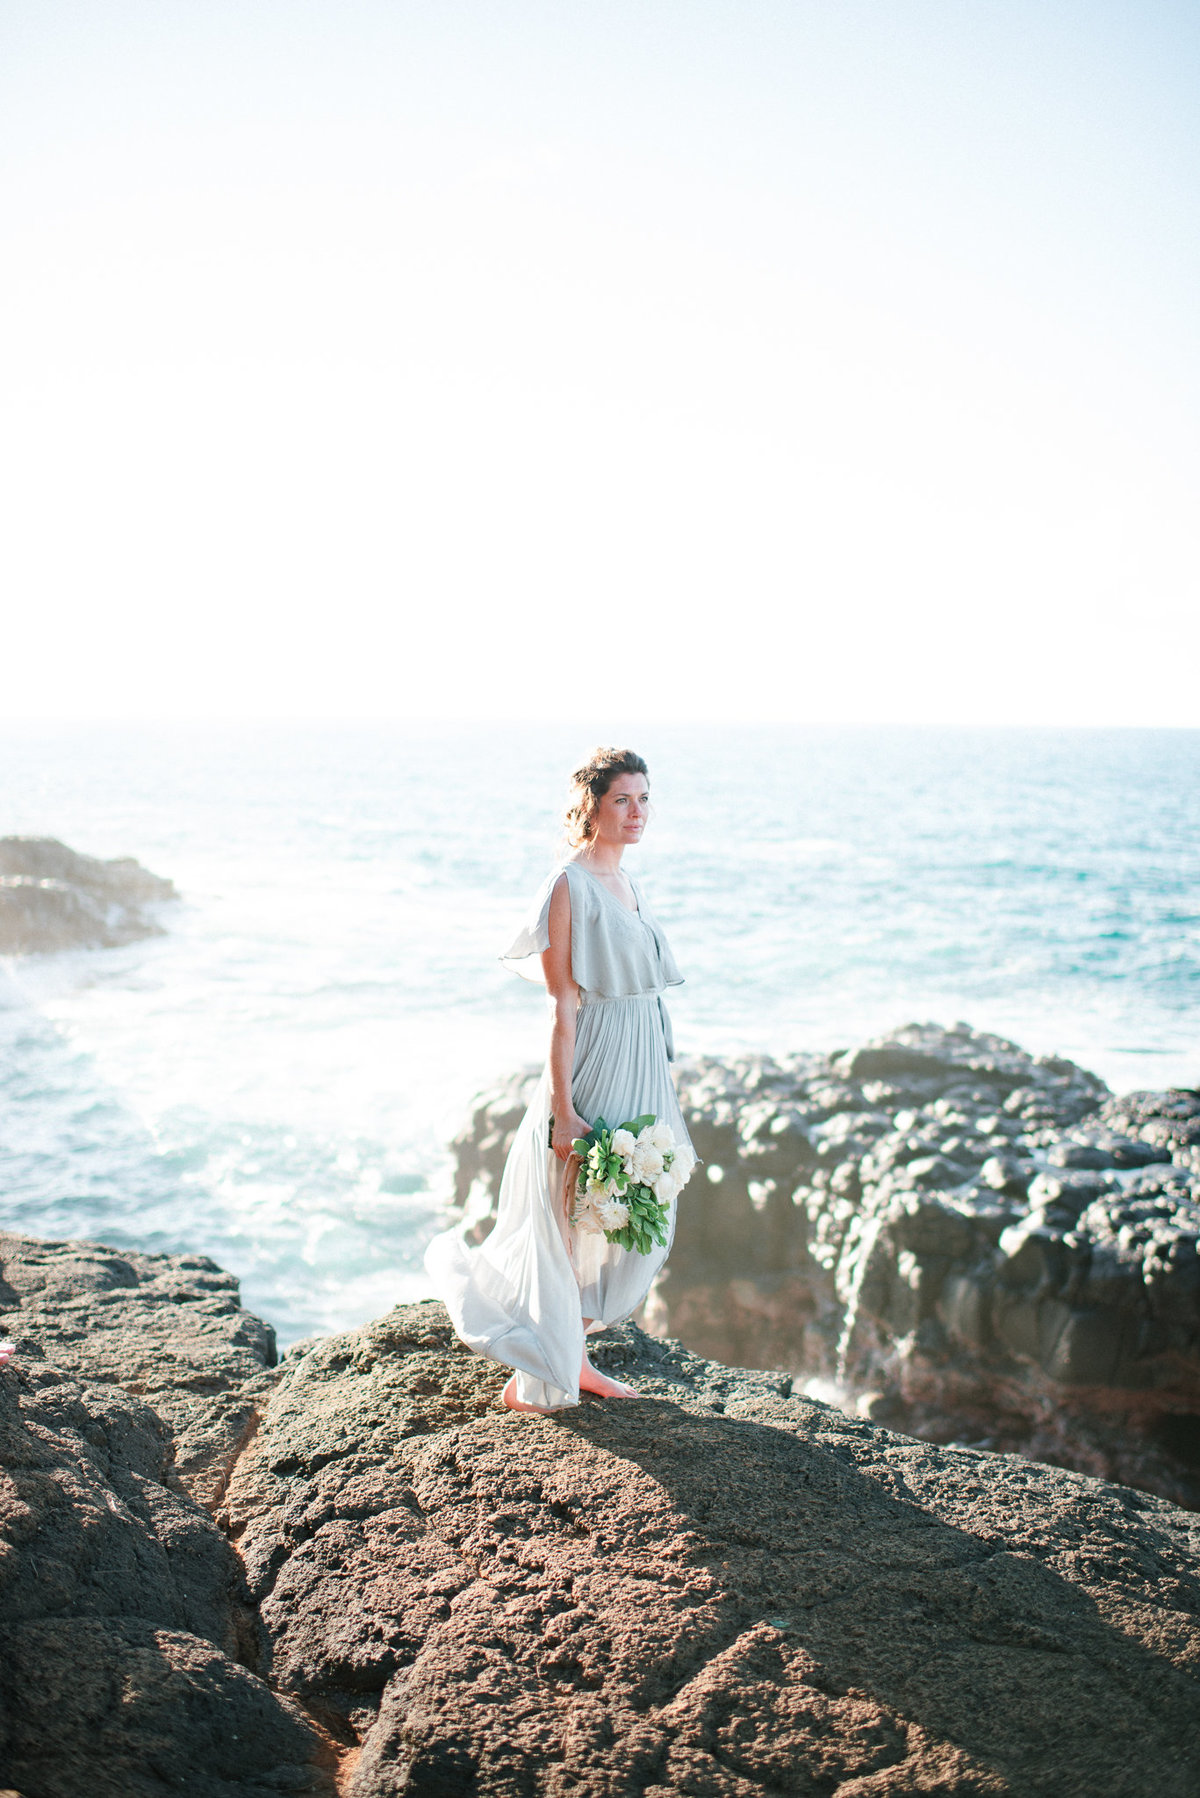 Sara Olivia Weddings Film Photographer Alaska Hawaii 63-7